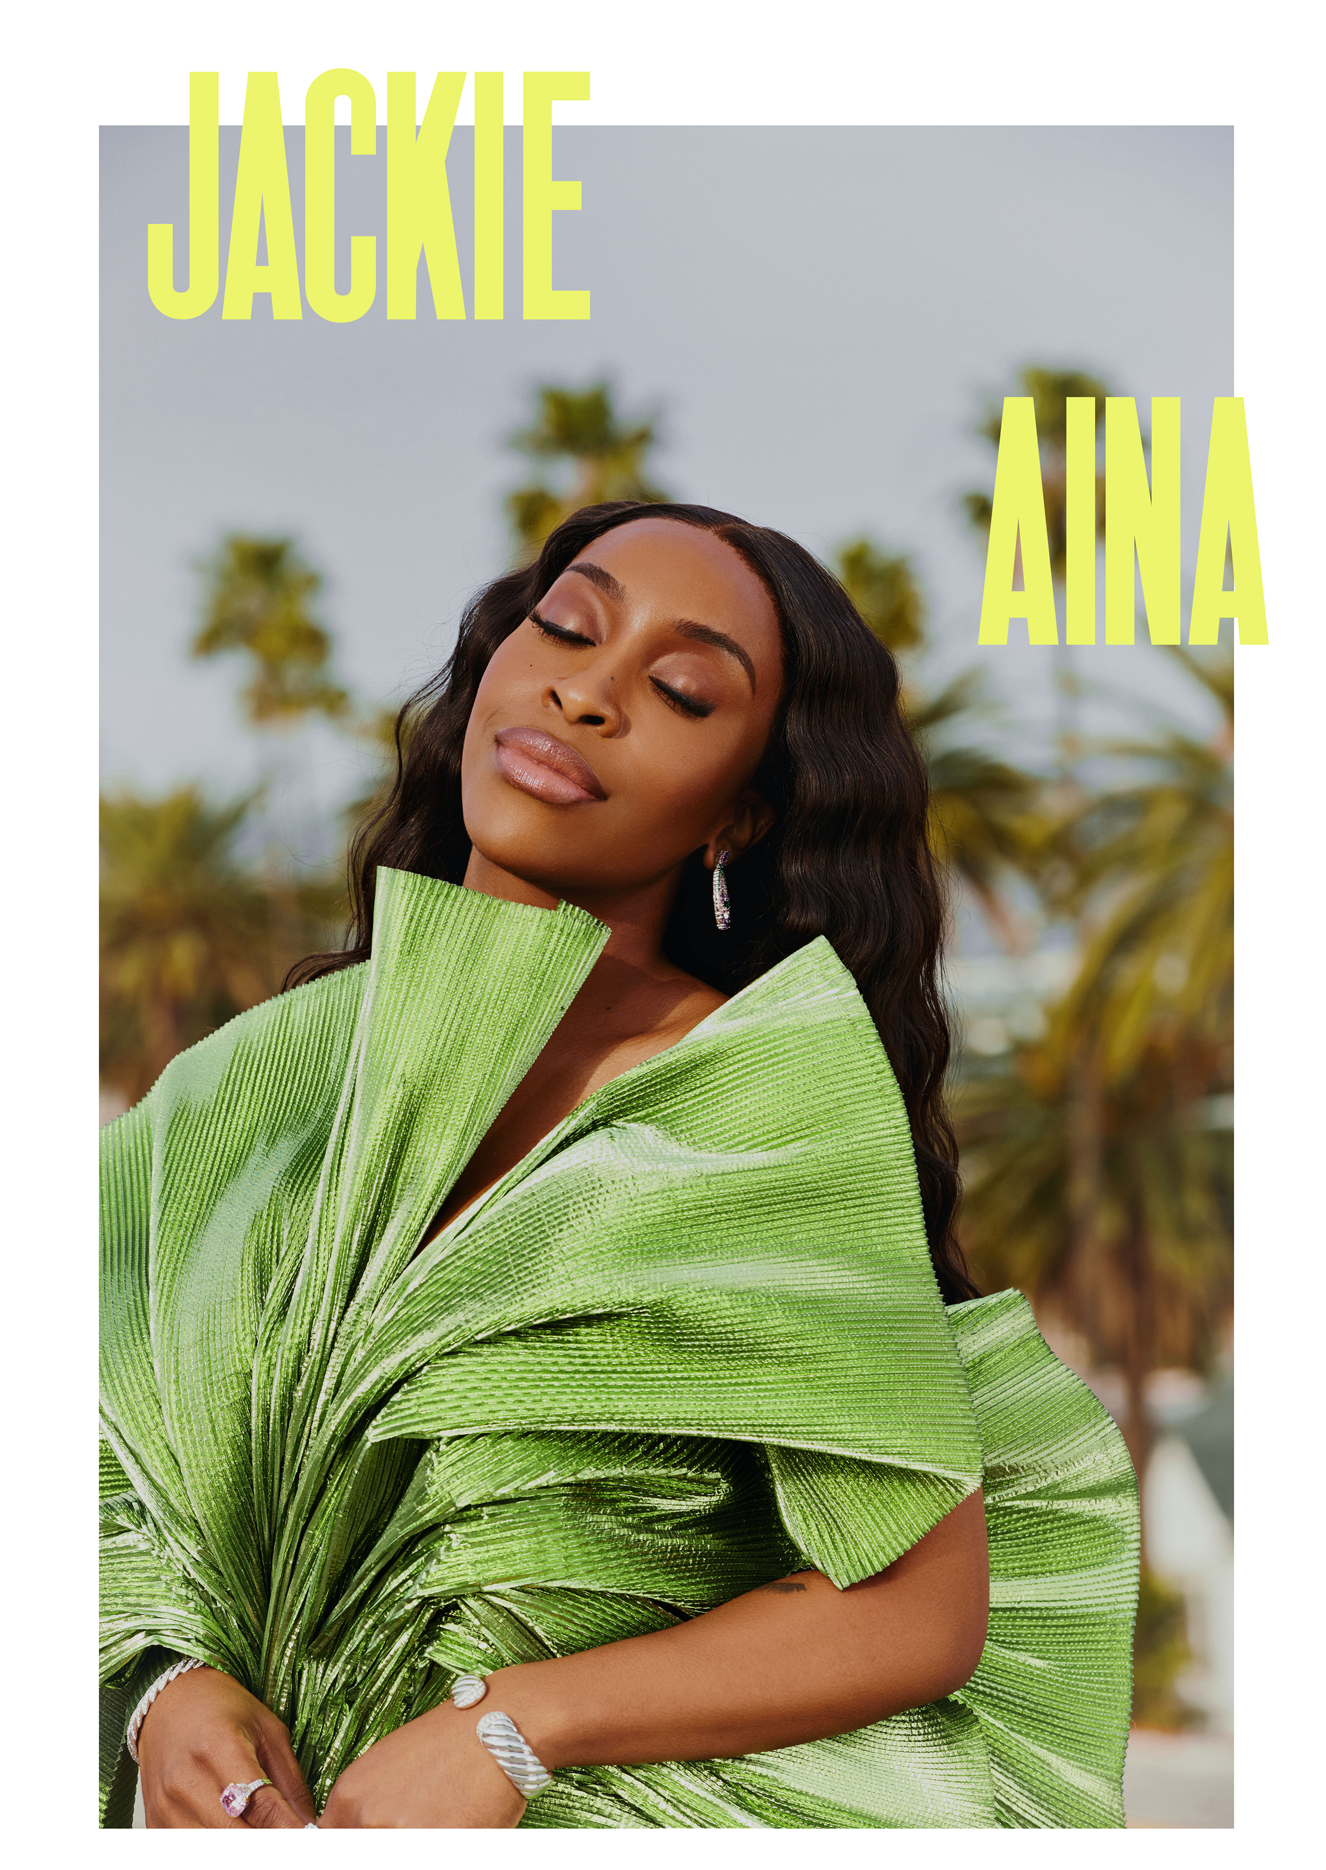 Jackie Aina Blew Up 'the Good Immigrant Daughter' Narrative—You Really Think She Cares What the Haters Say?